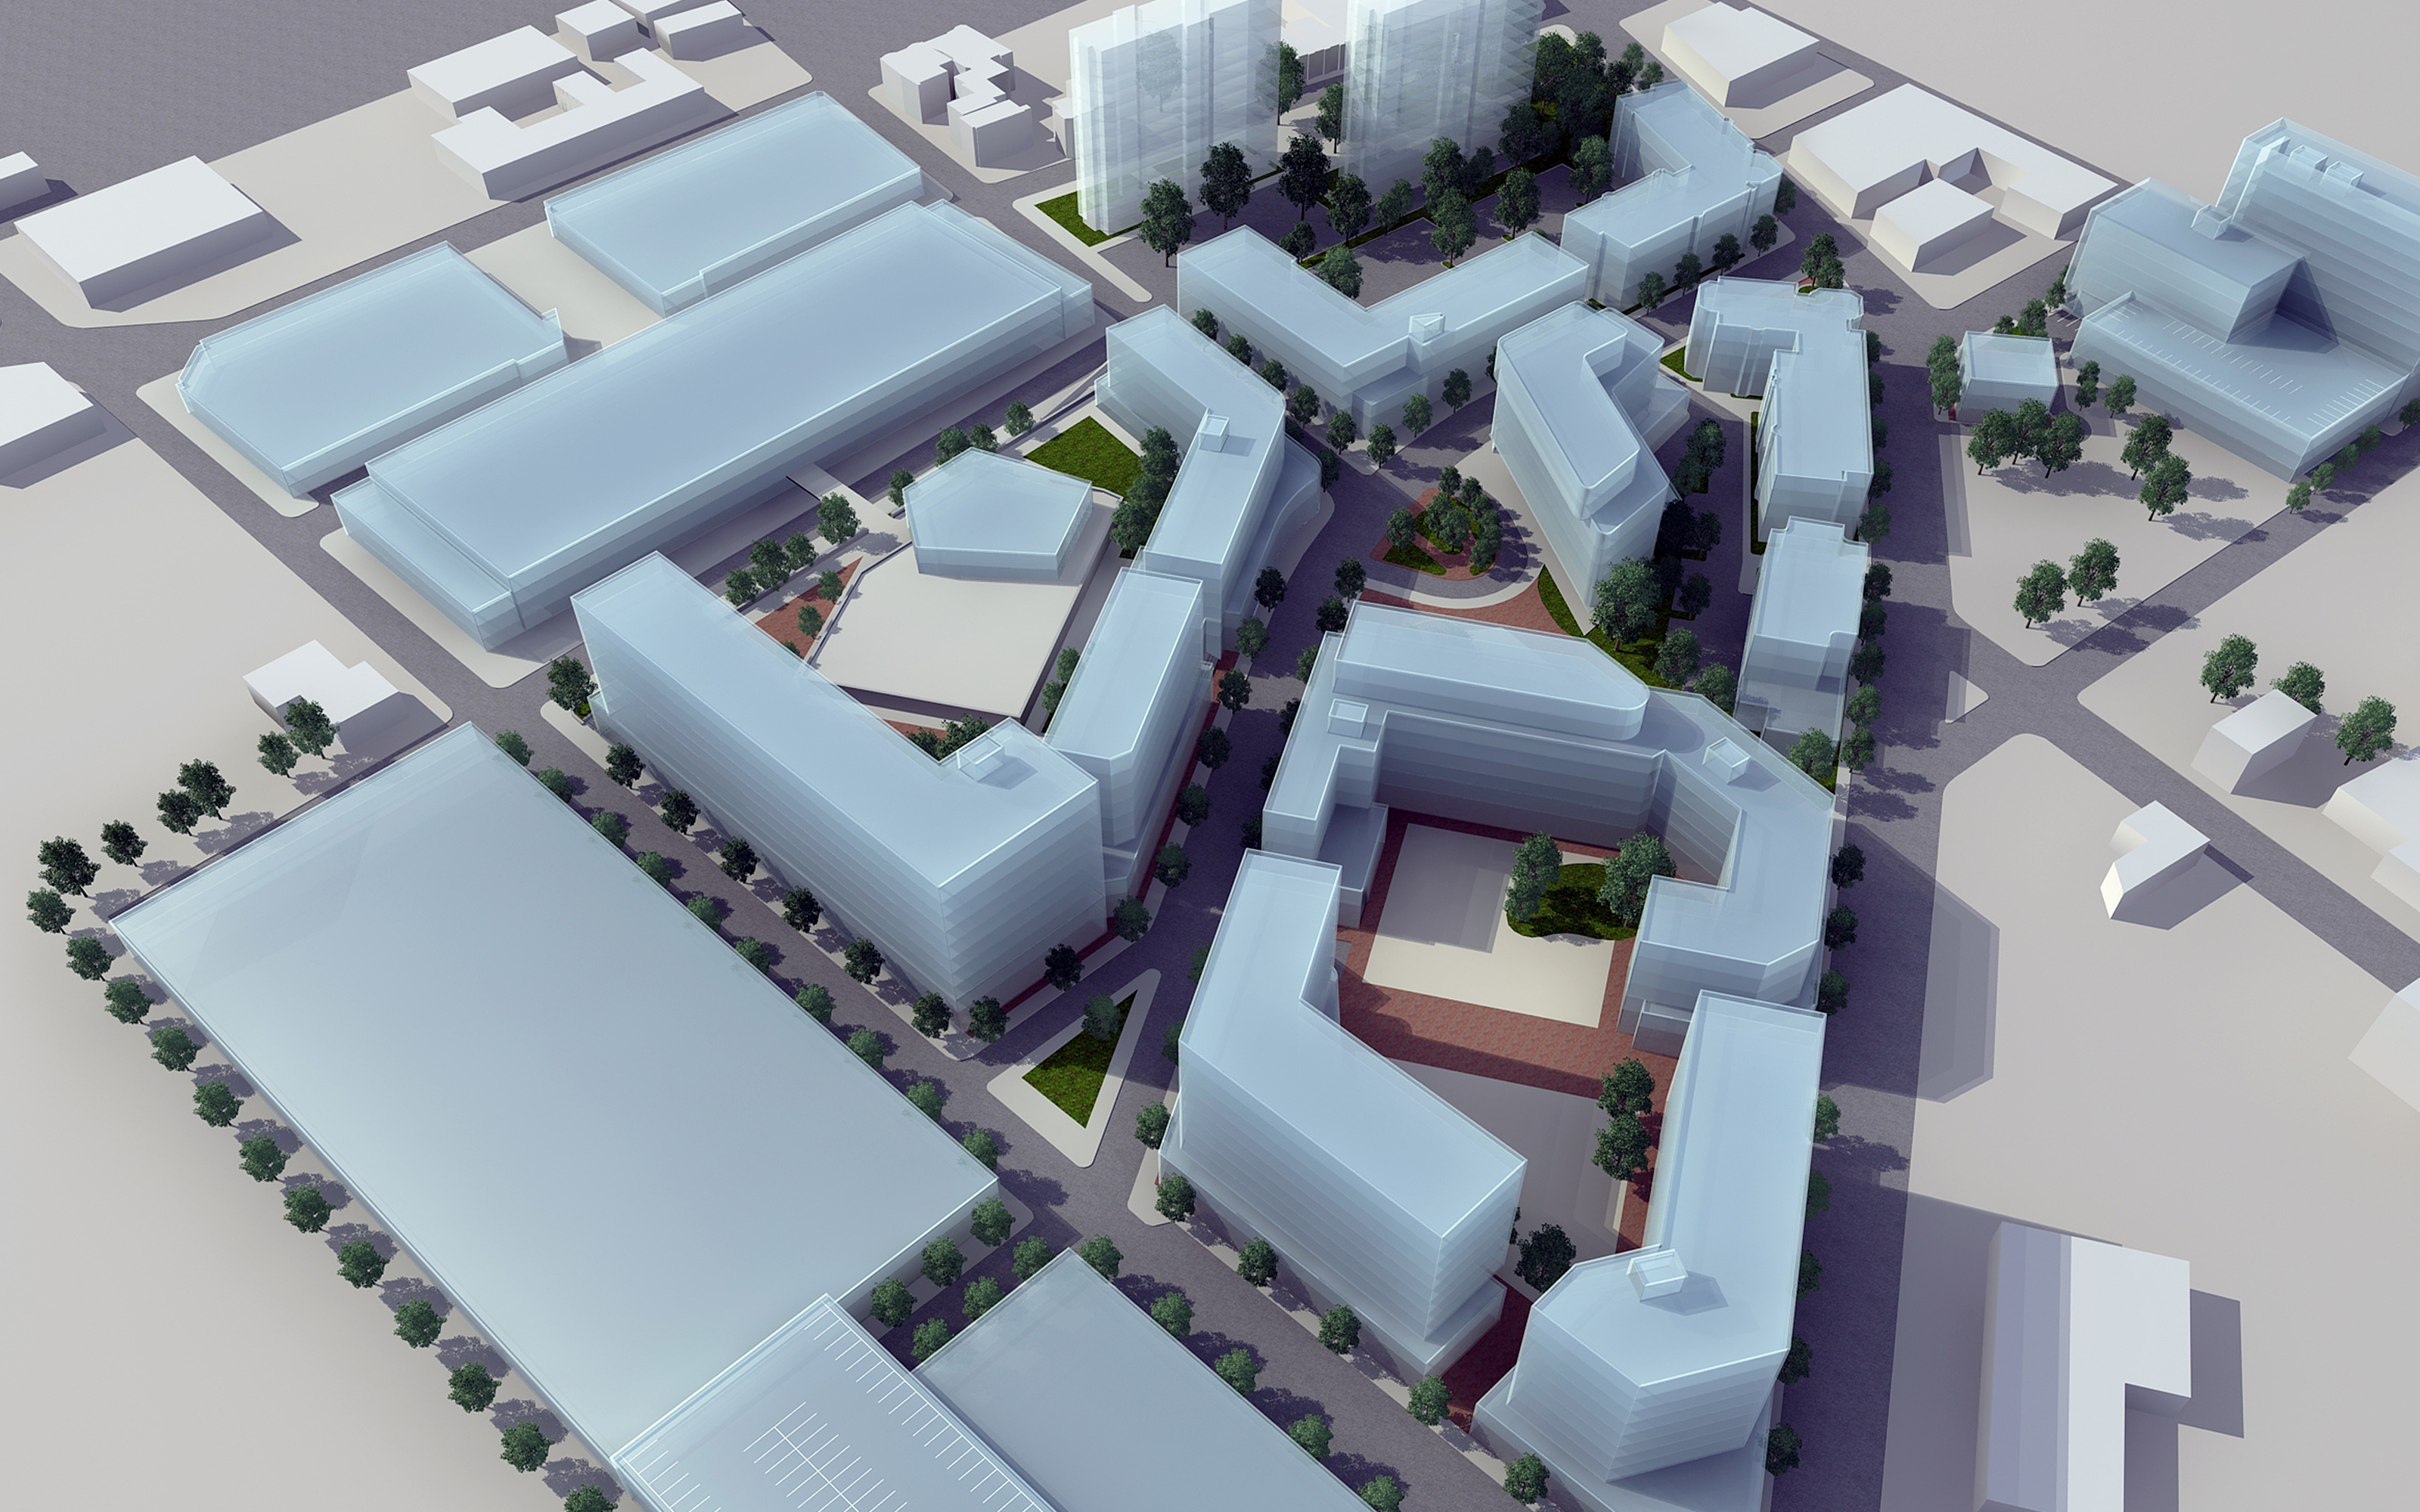 With The Success Of Its Baxter Terrace Development Firm Was Again Commissioned By Newark Housing Authority To Develop A Modern Land Use Planning